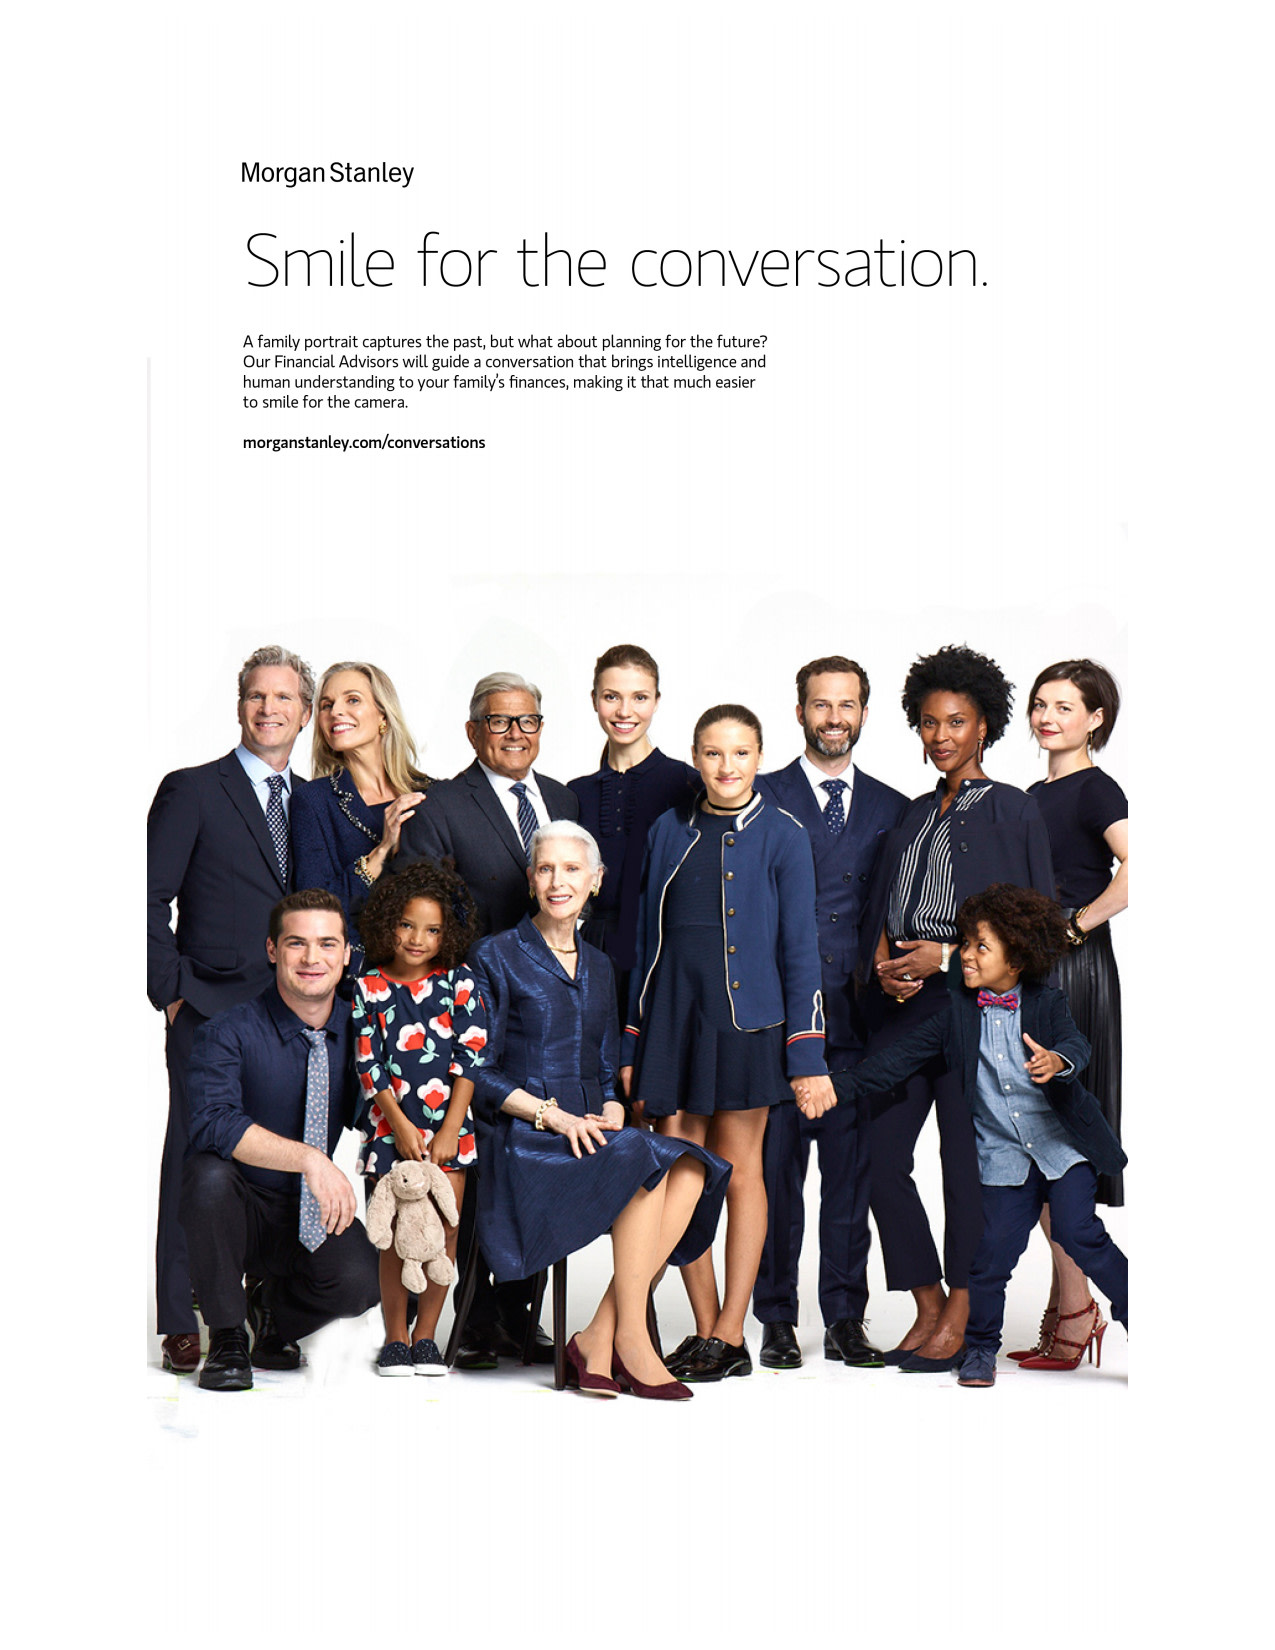 Morgan Stanley: Family Portrait